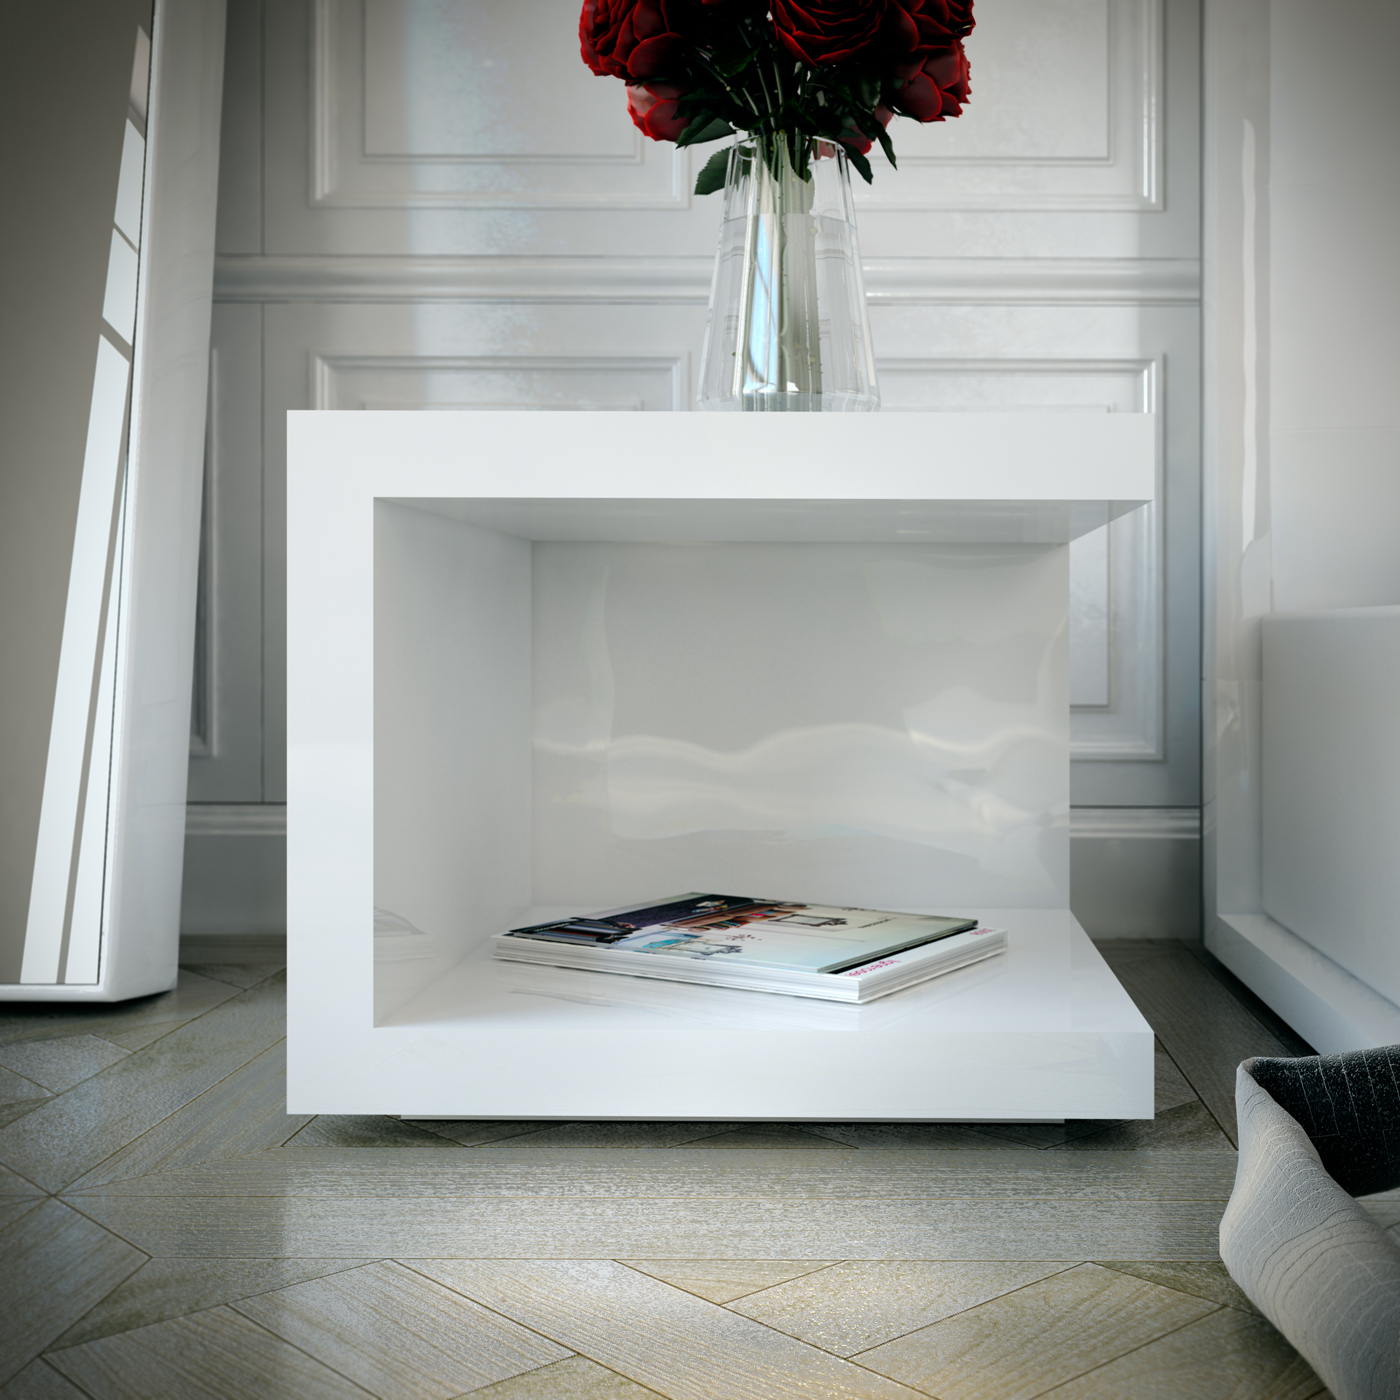 Ludlow White Lacquer Bedside Table Las Vegas Furniture Store Modern Home Furniture